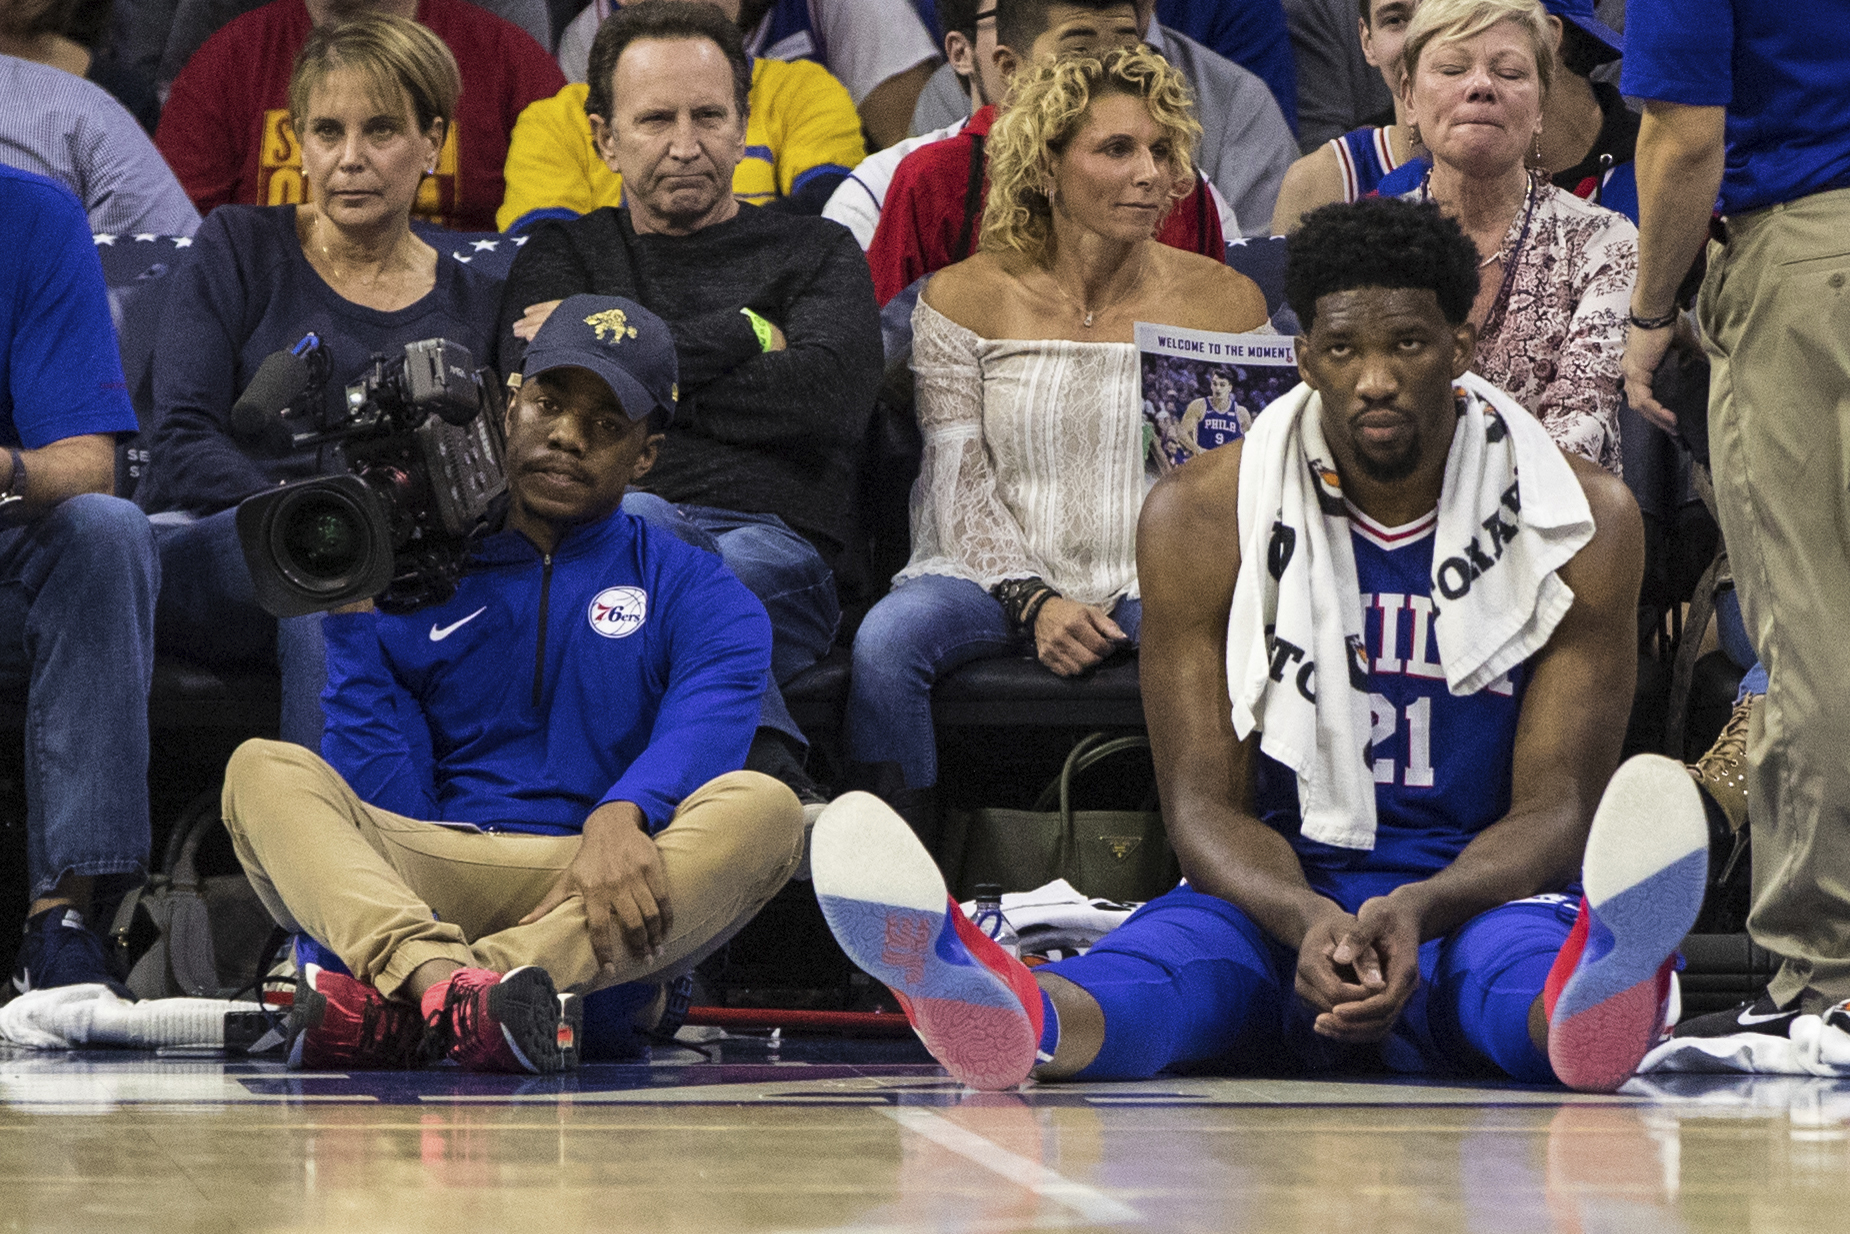 Philadelphia 76ers´ Joel Embiid, of Cameroon, looks on from the sidelines during the first half of an NBA basketball game against the Indiana Pacers, Friday, Nov. 3, 2017, in Philadelphia. The 76ers won 121-110. (AP Photo/Chris Szagola)